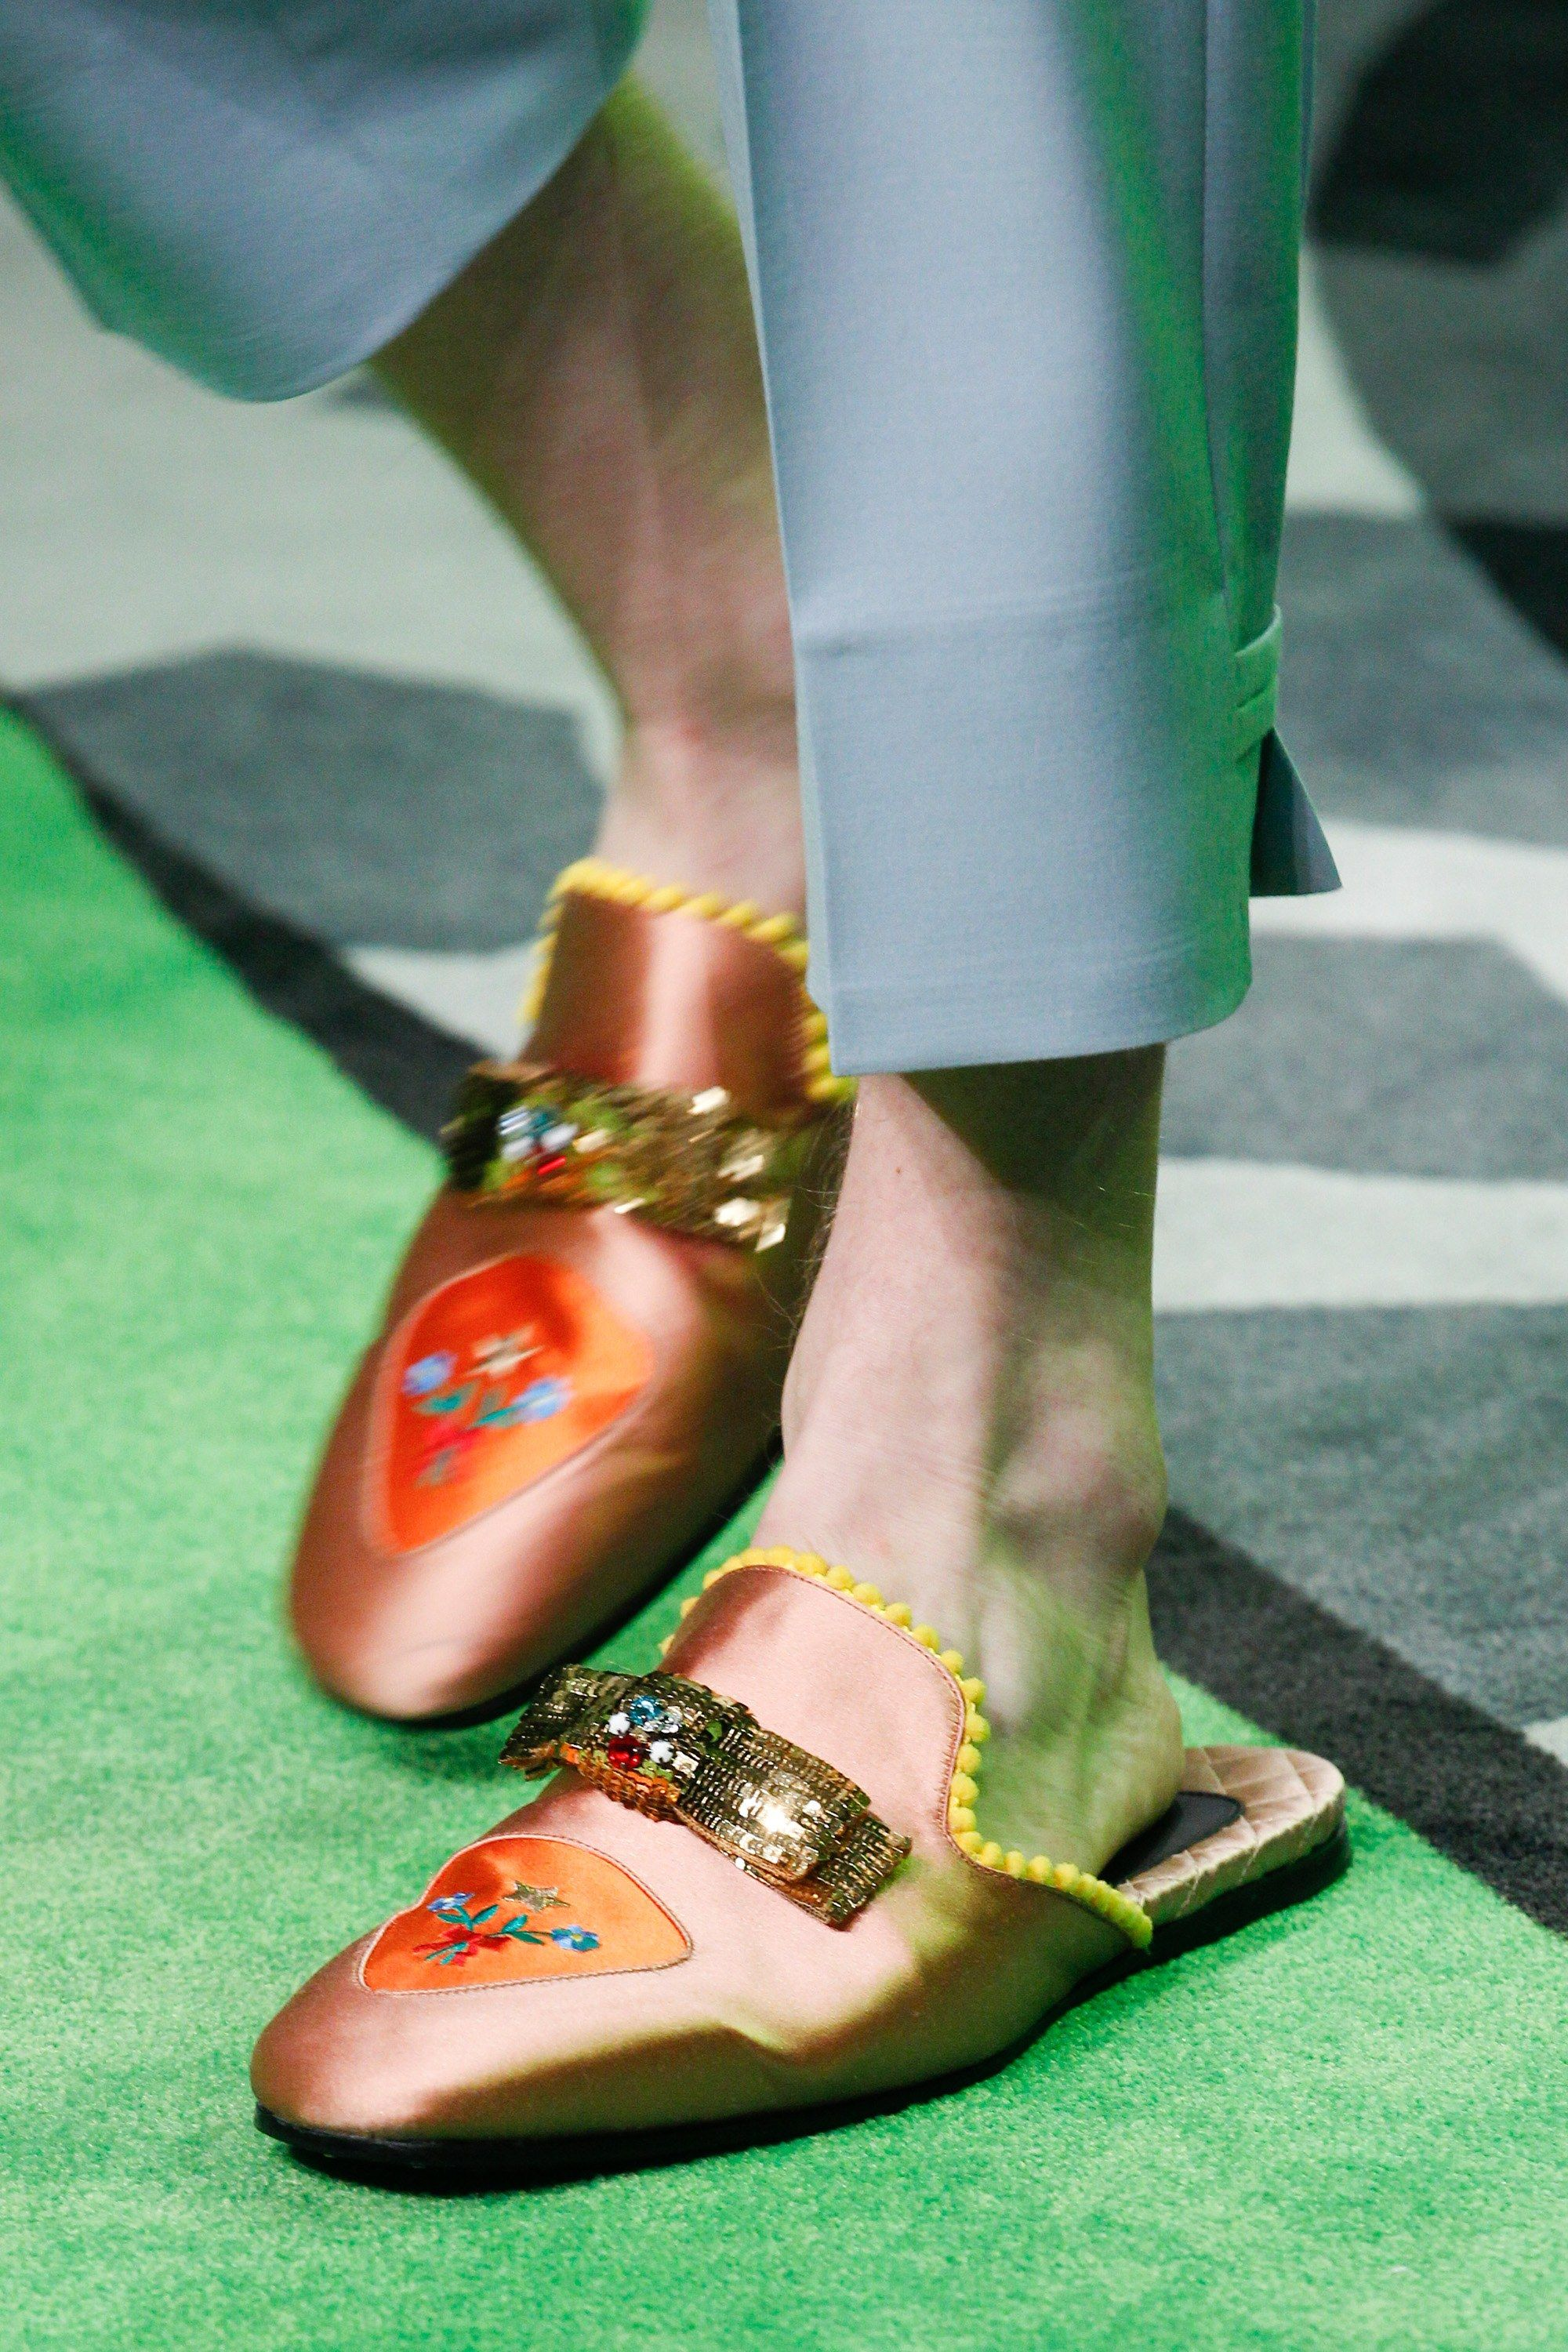 gucci 2017 shoes. gucci spring 2017 menswear fashion show details shoes